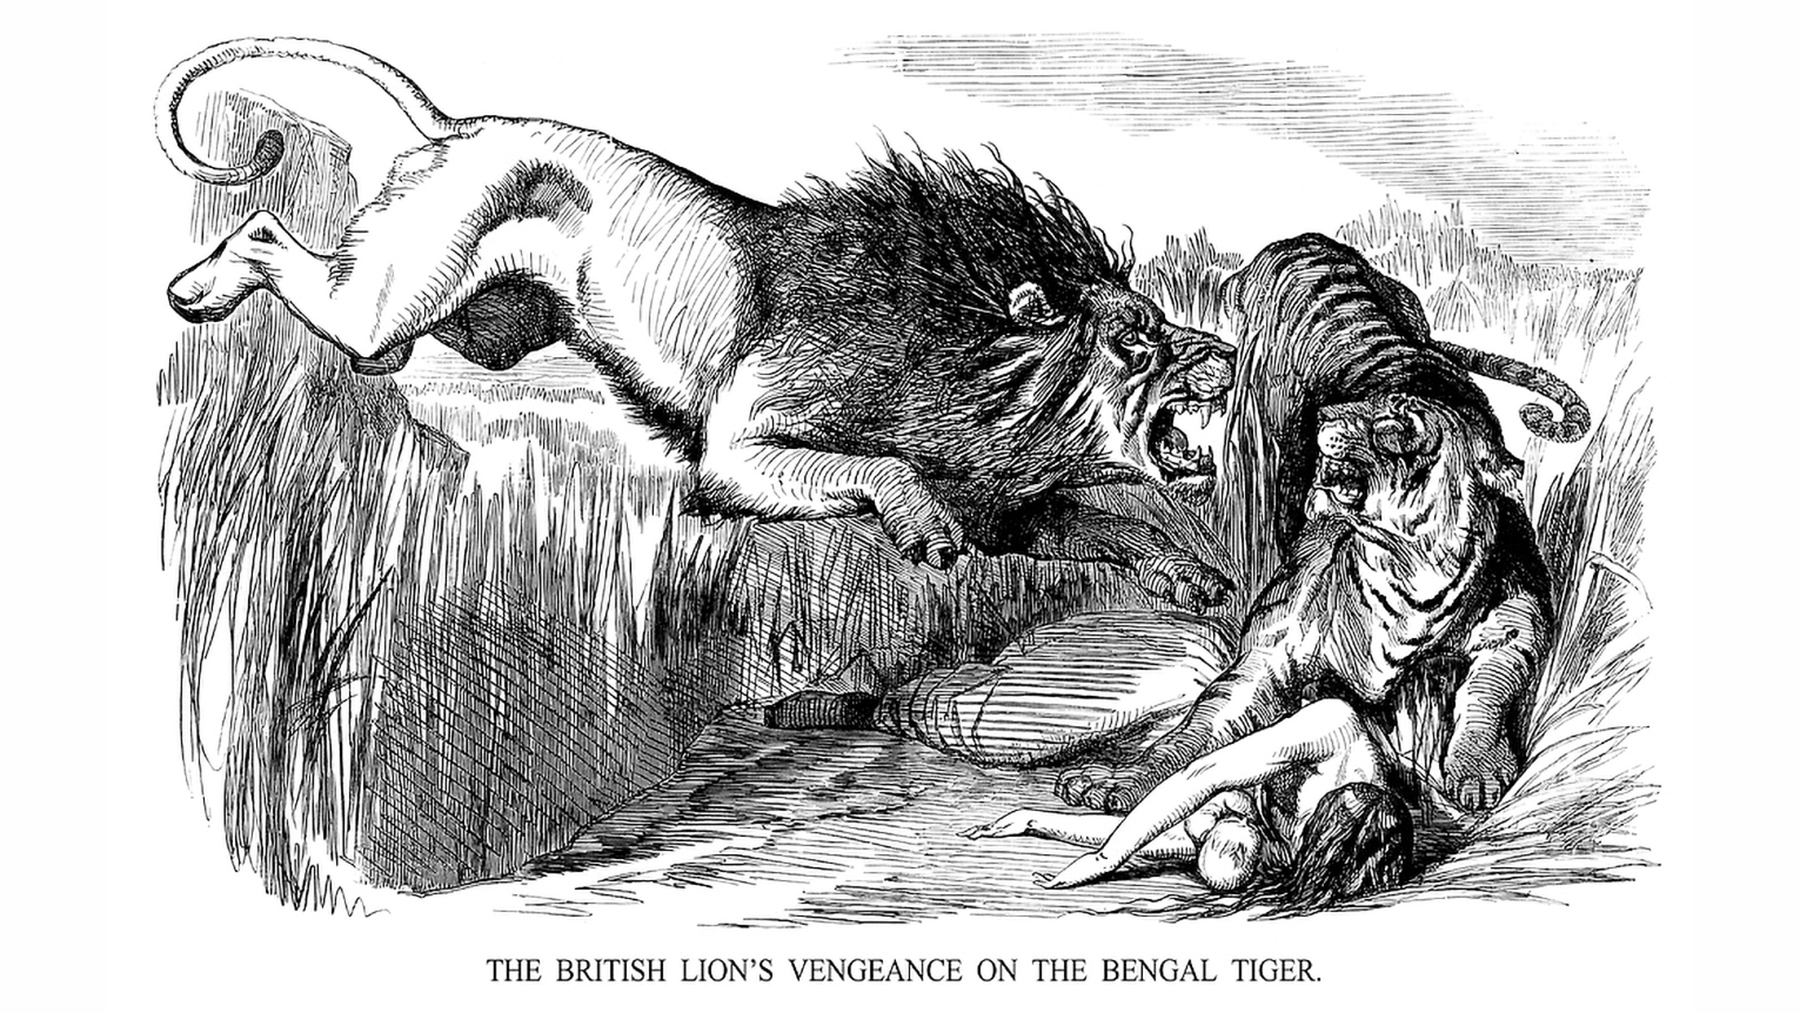 """""""The British Lion's Vengeance on the Bengal Tiger,"""" by John Tenniel, was published during the Indian Mutiny, when India rebelled against British rule. Sketch from Punch, Aug. 22, 1857."""